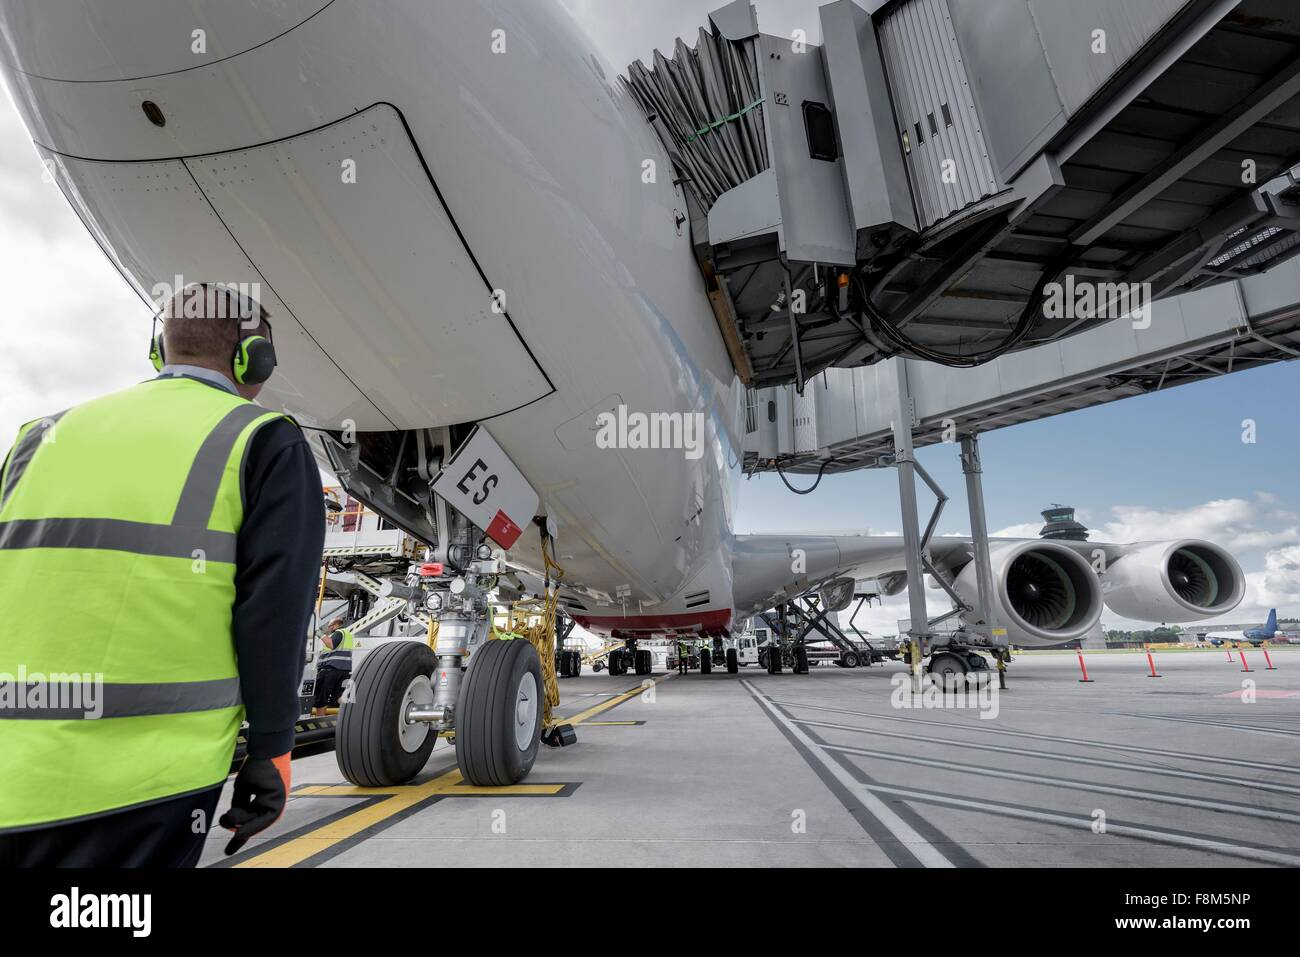 Engineer inspecting A380 aircraft at stand in airport - Stock Image